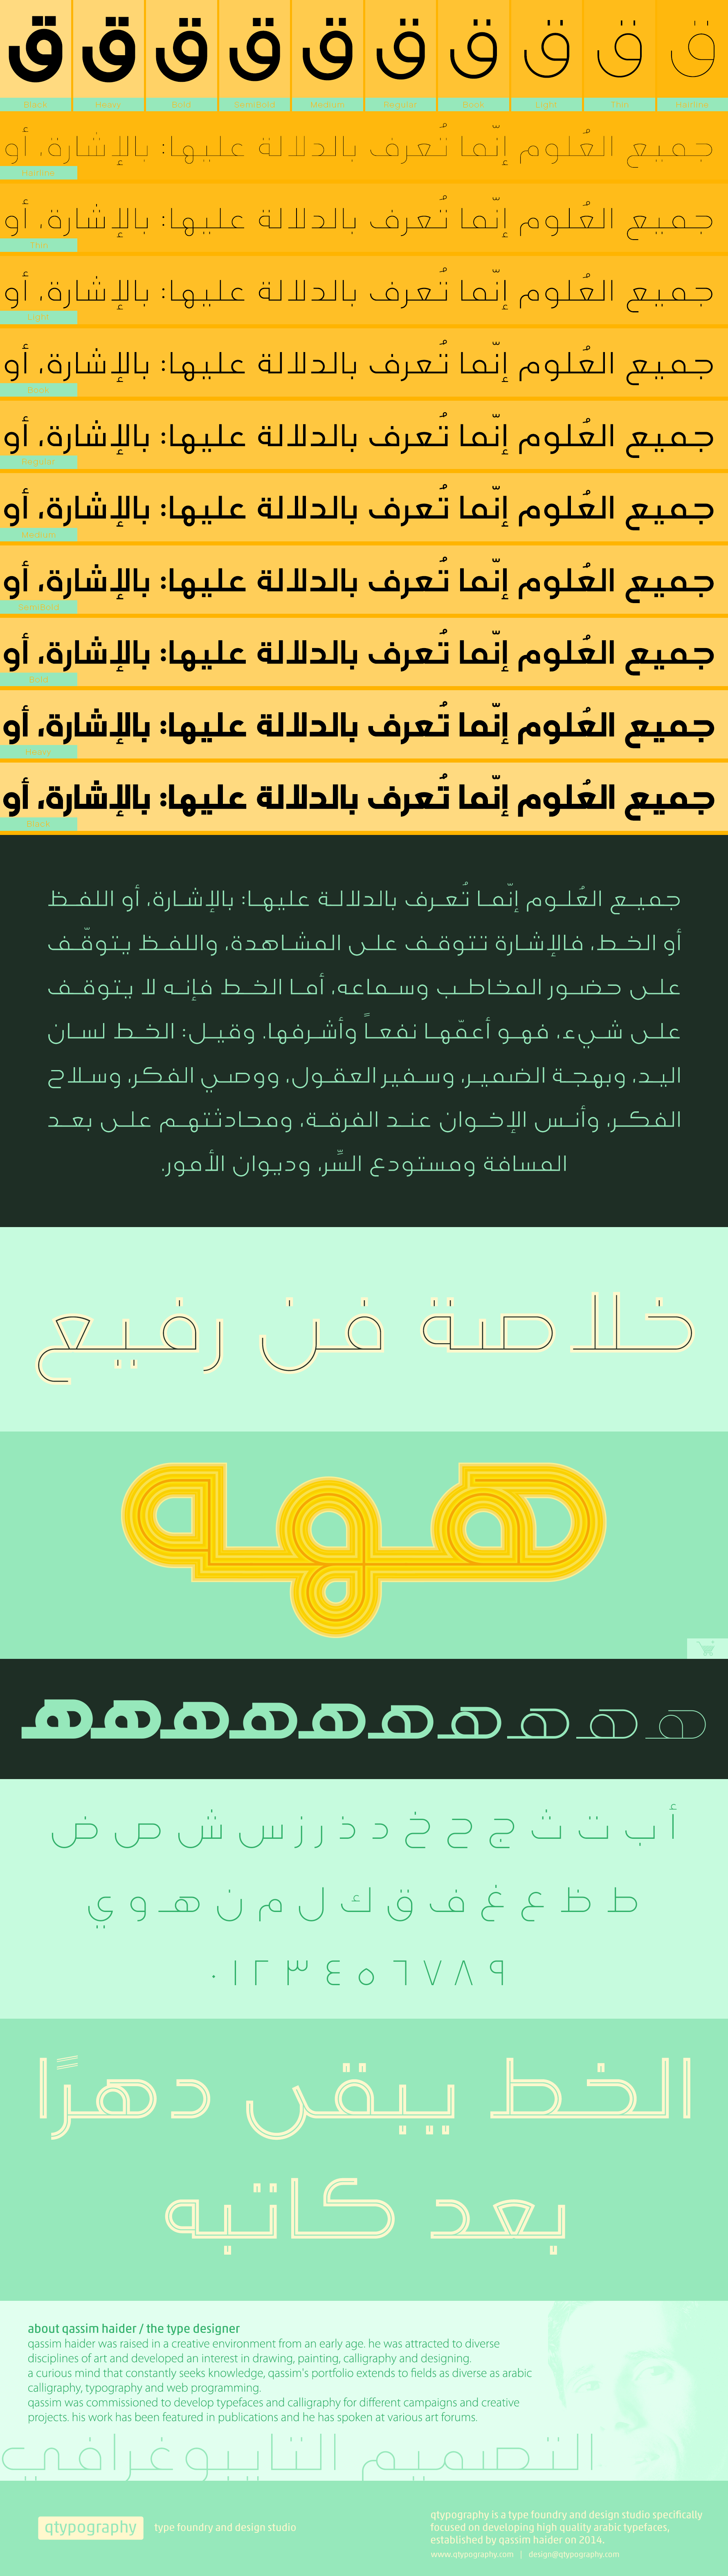 qtypography | arabic type-design foundry and design studio